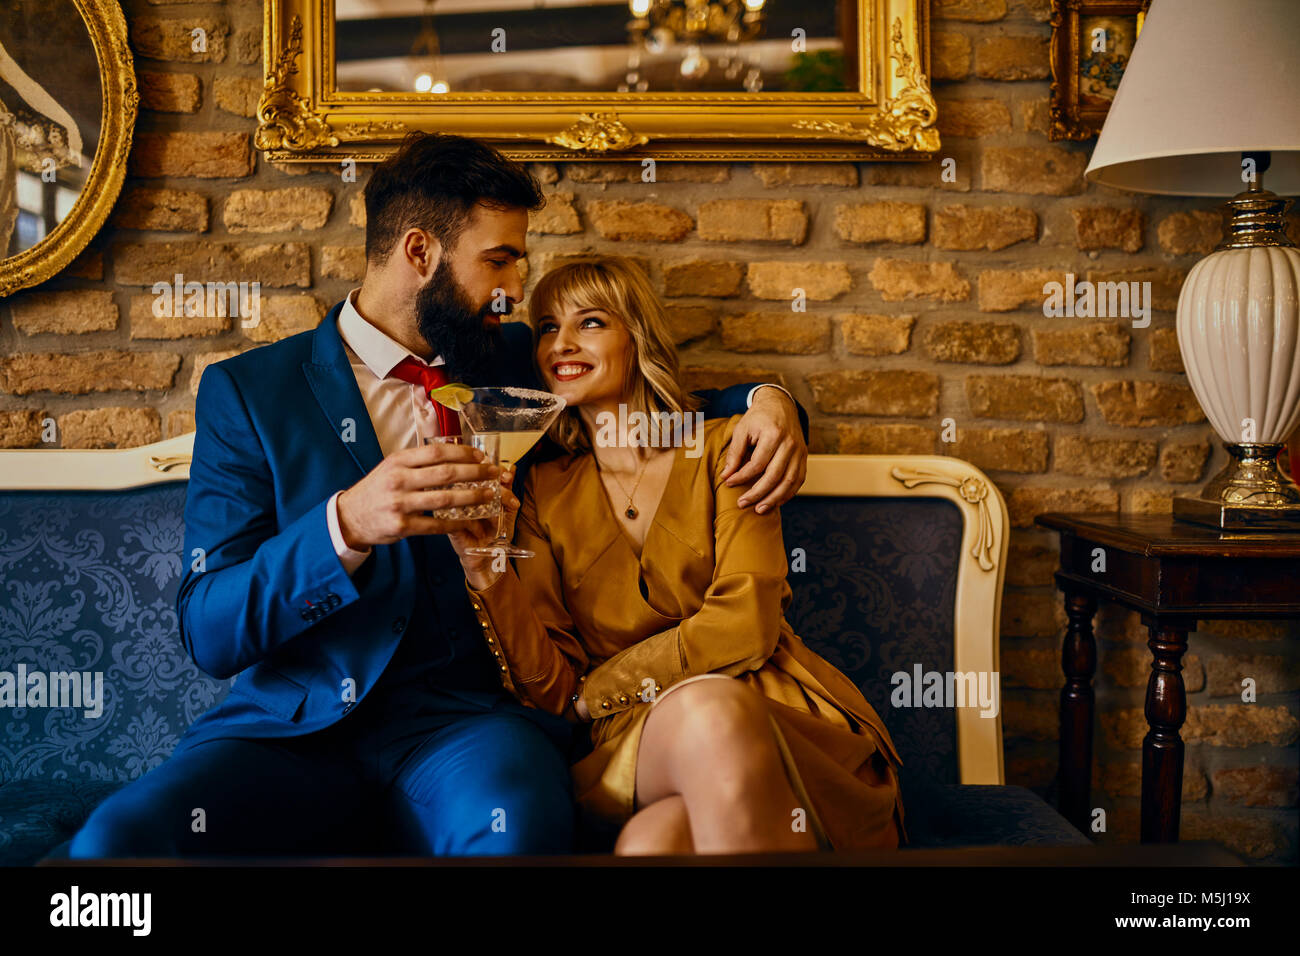 Happy elegant couple with drinks sitting on couch embracing - Stock Image